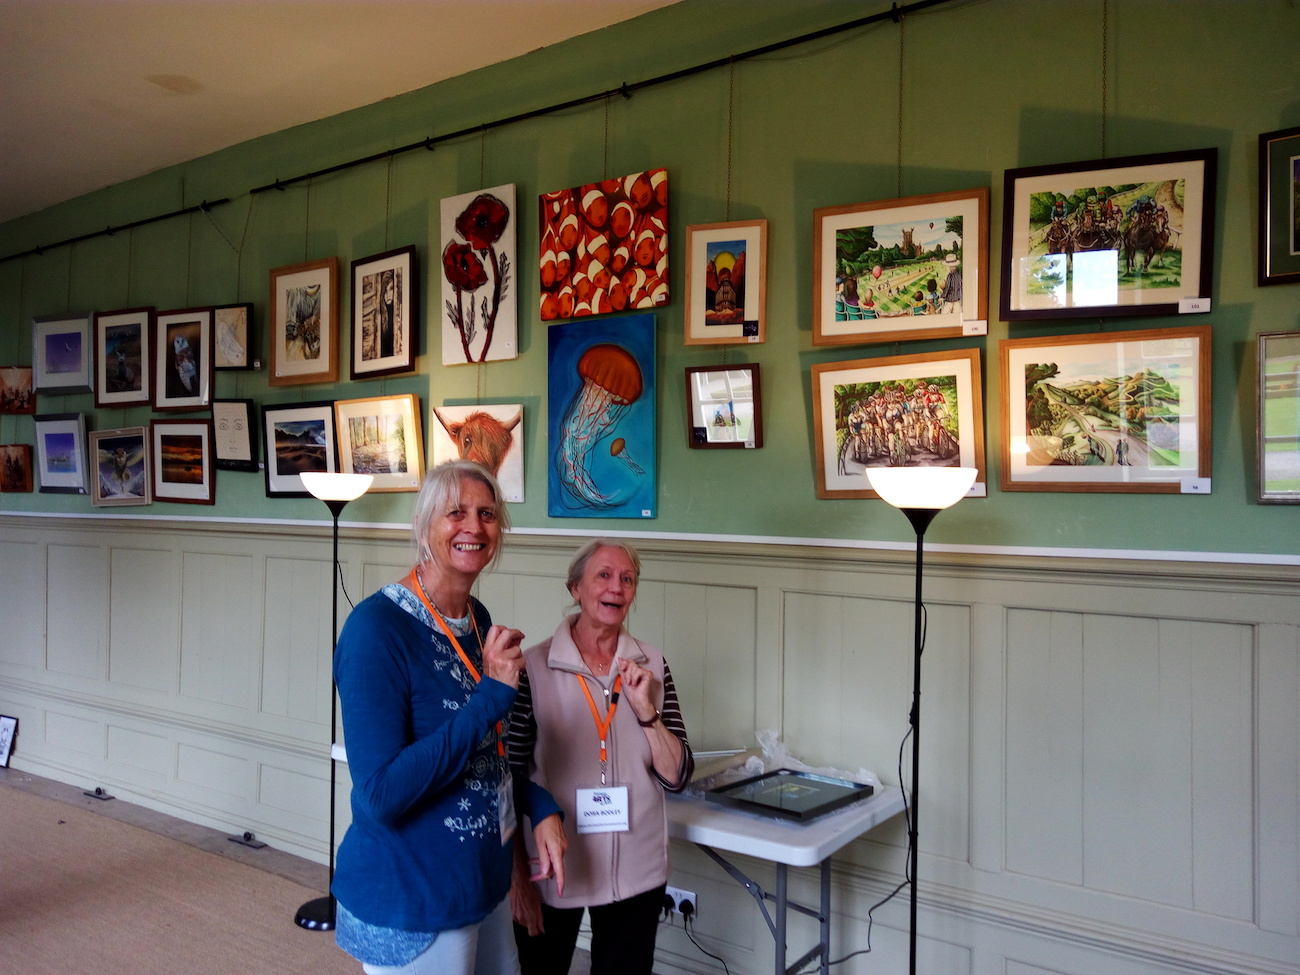 DAN members Julia Rollit and Dora Bodley stewarding at the last year's exhibition